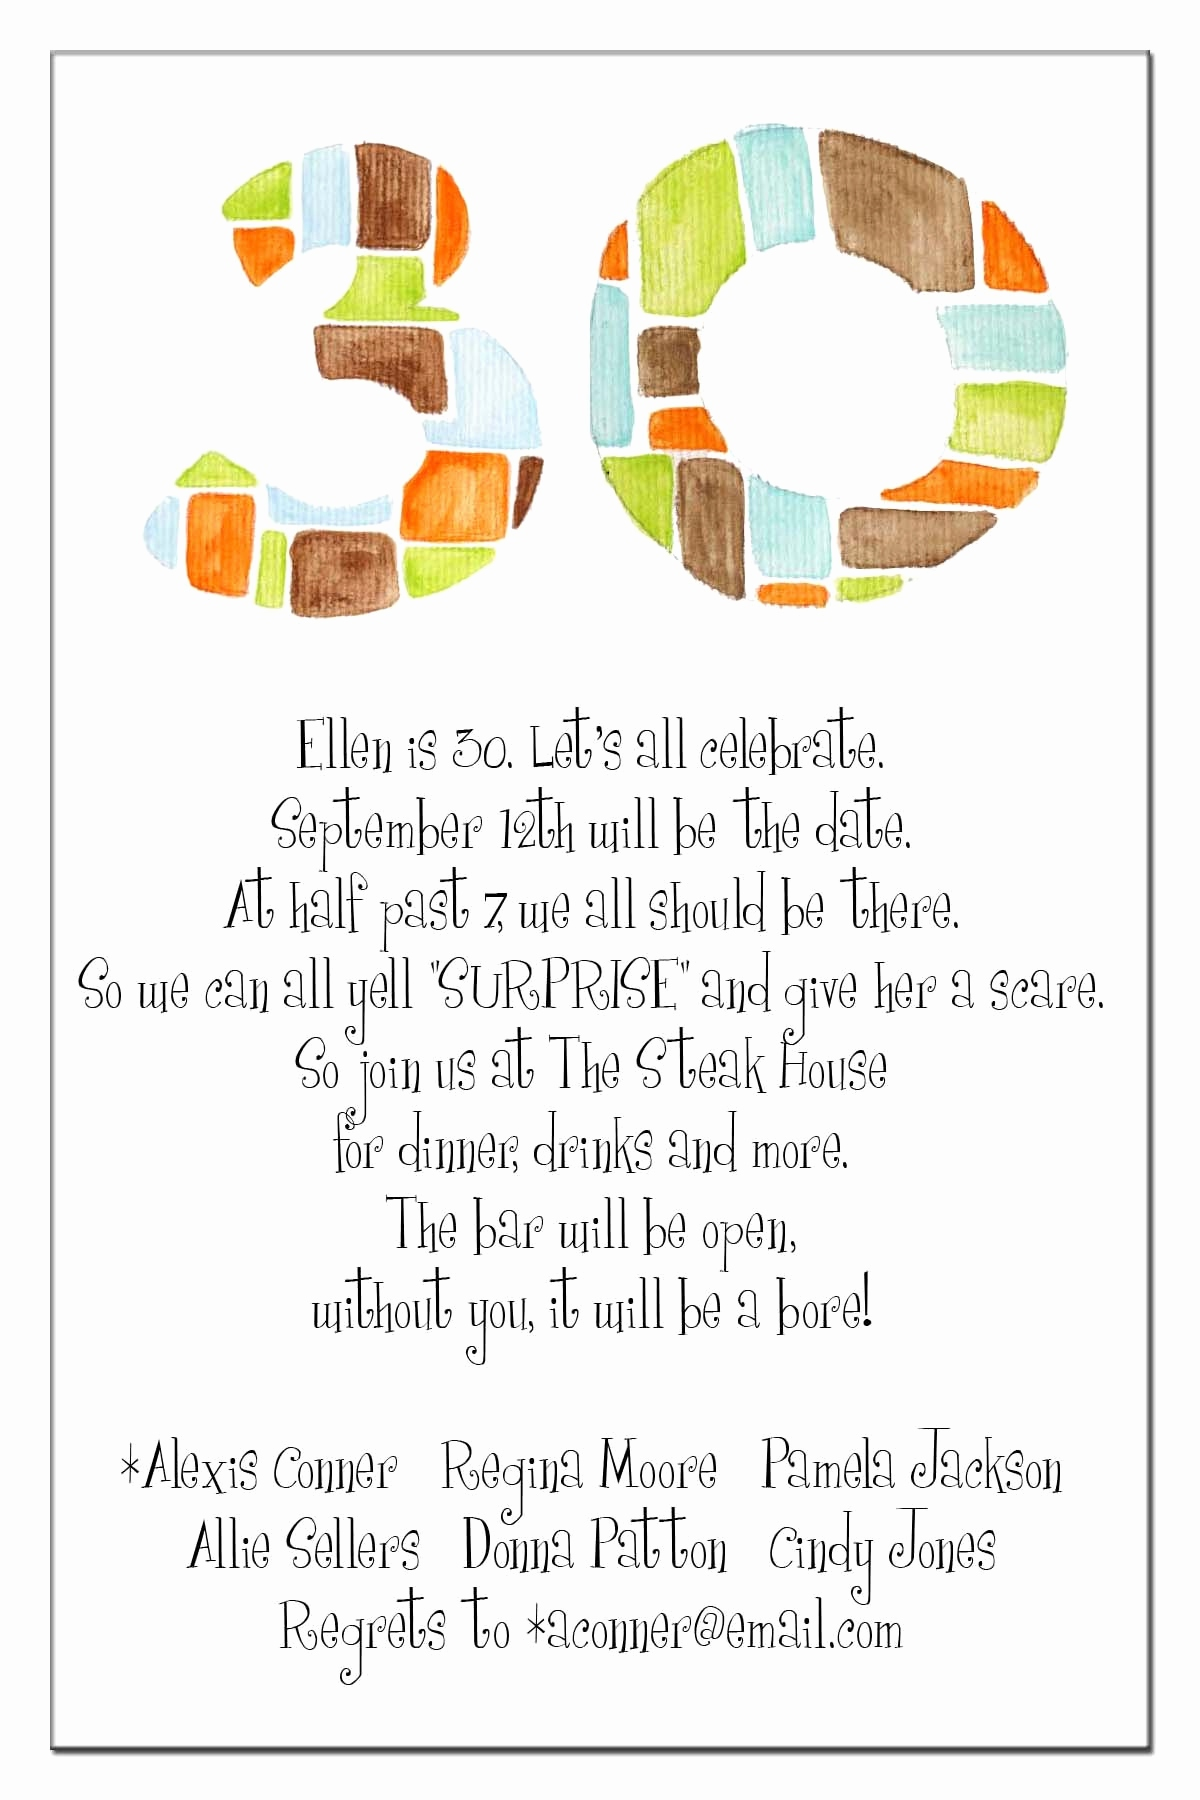 30th birthday card messages for friend ; best-friend-birthday-card-messages-new-design-best-30th-birthday-card-messages-plus-30th-birthday-card-of-best-friend-birthday-card-messages